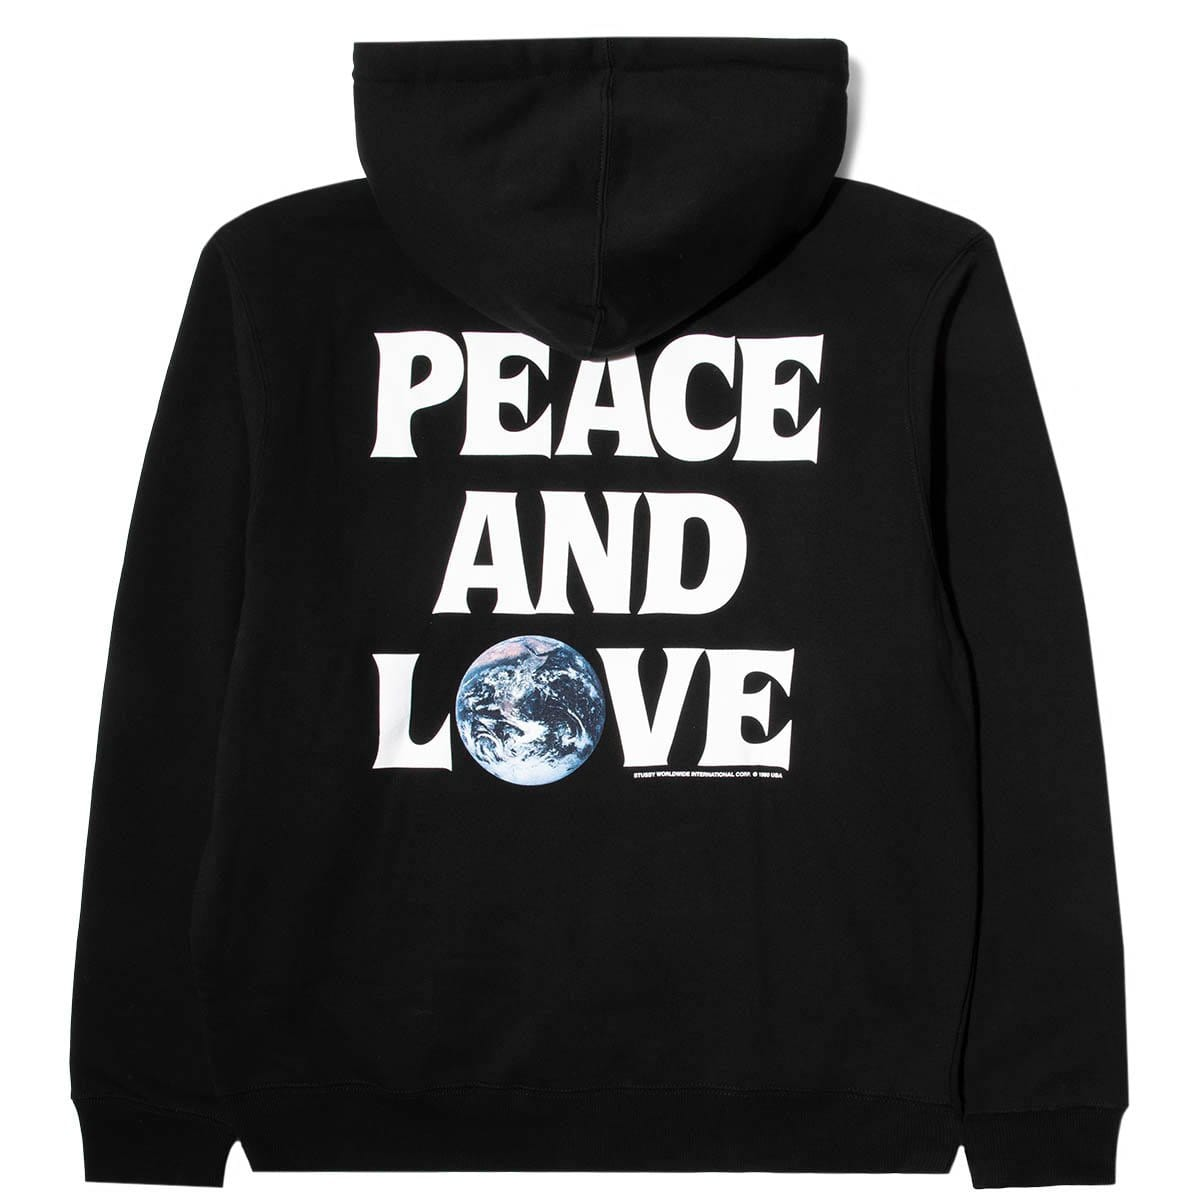 Stüssy Hoodies & Sweatshirts PEACE & LOVE HOOD